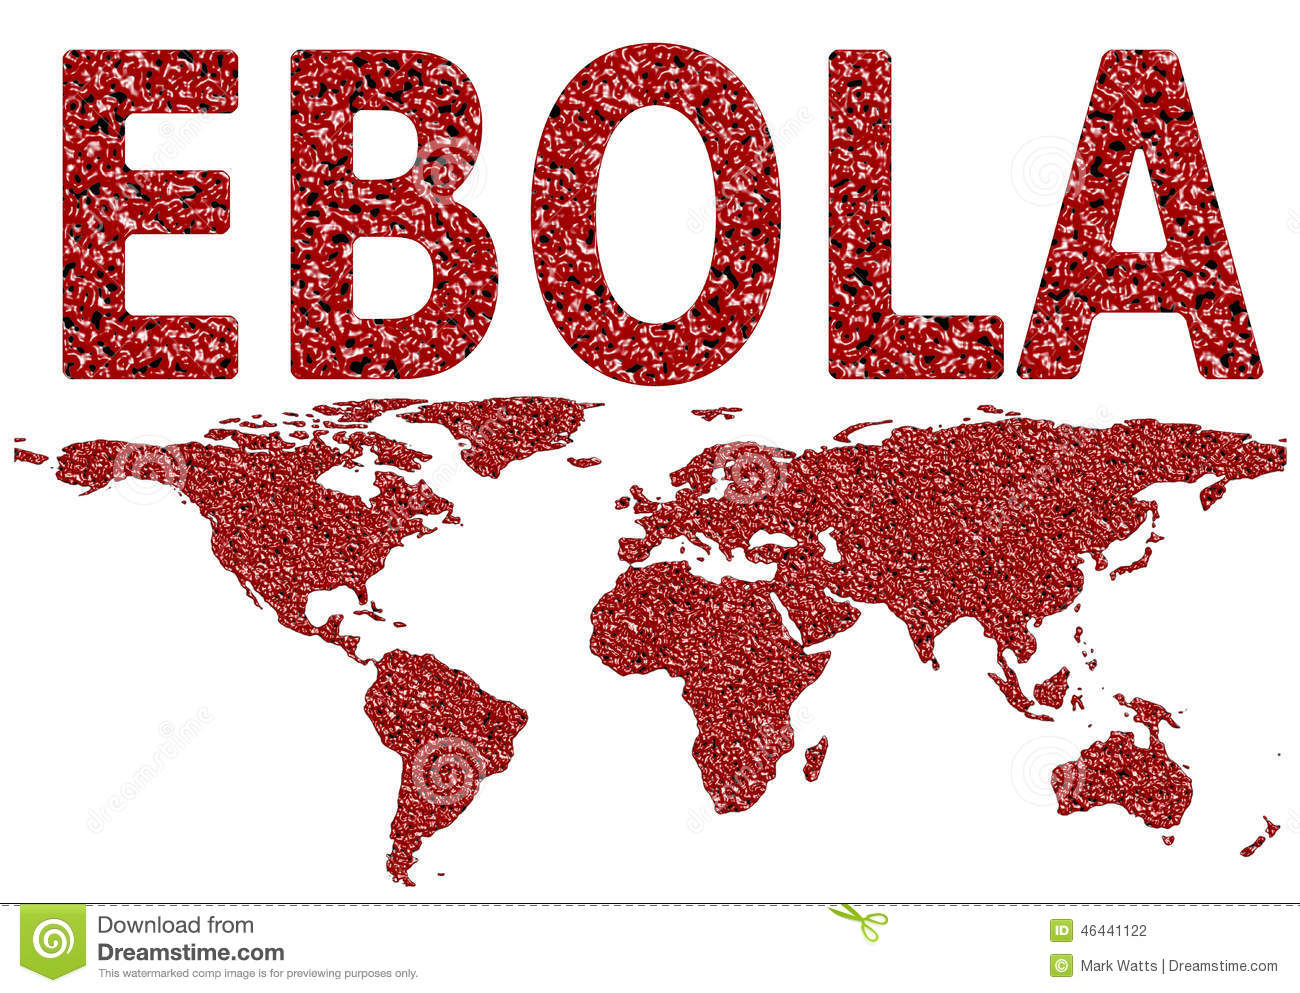 le virus ebola dans le monde entier a cart photo stock image 46441122. Black Bedroom Furniture Sets. Home Design Ideas